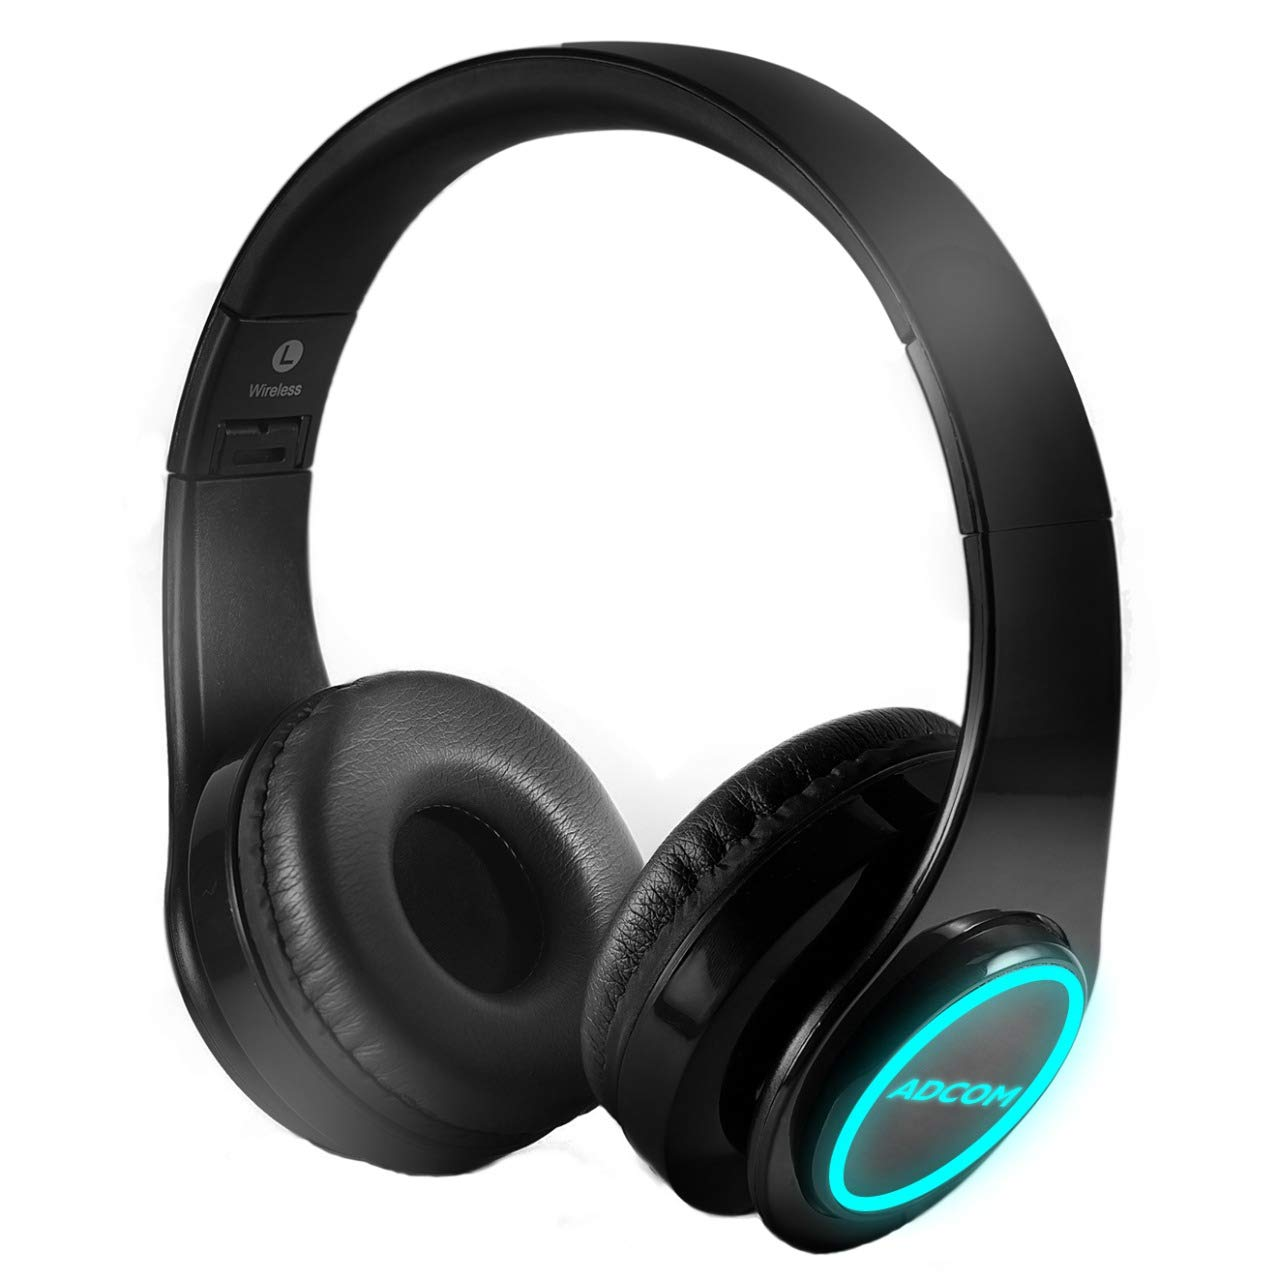 Adcom Luminosa   Wireless Bluetooth LED Headset/Headphone with Mic LEDs for All Smartphones IPhones    Black